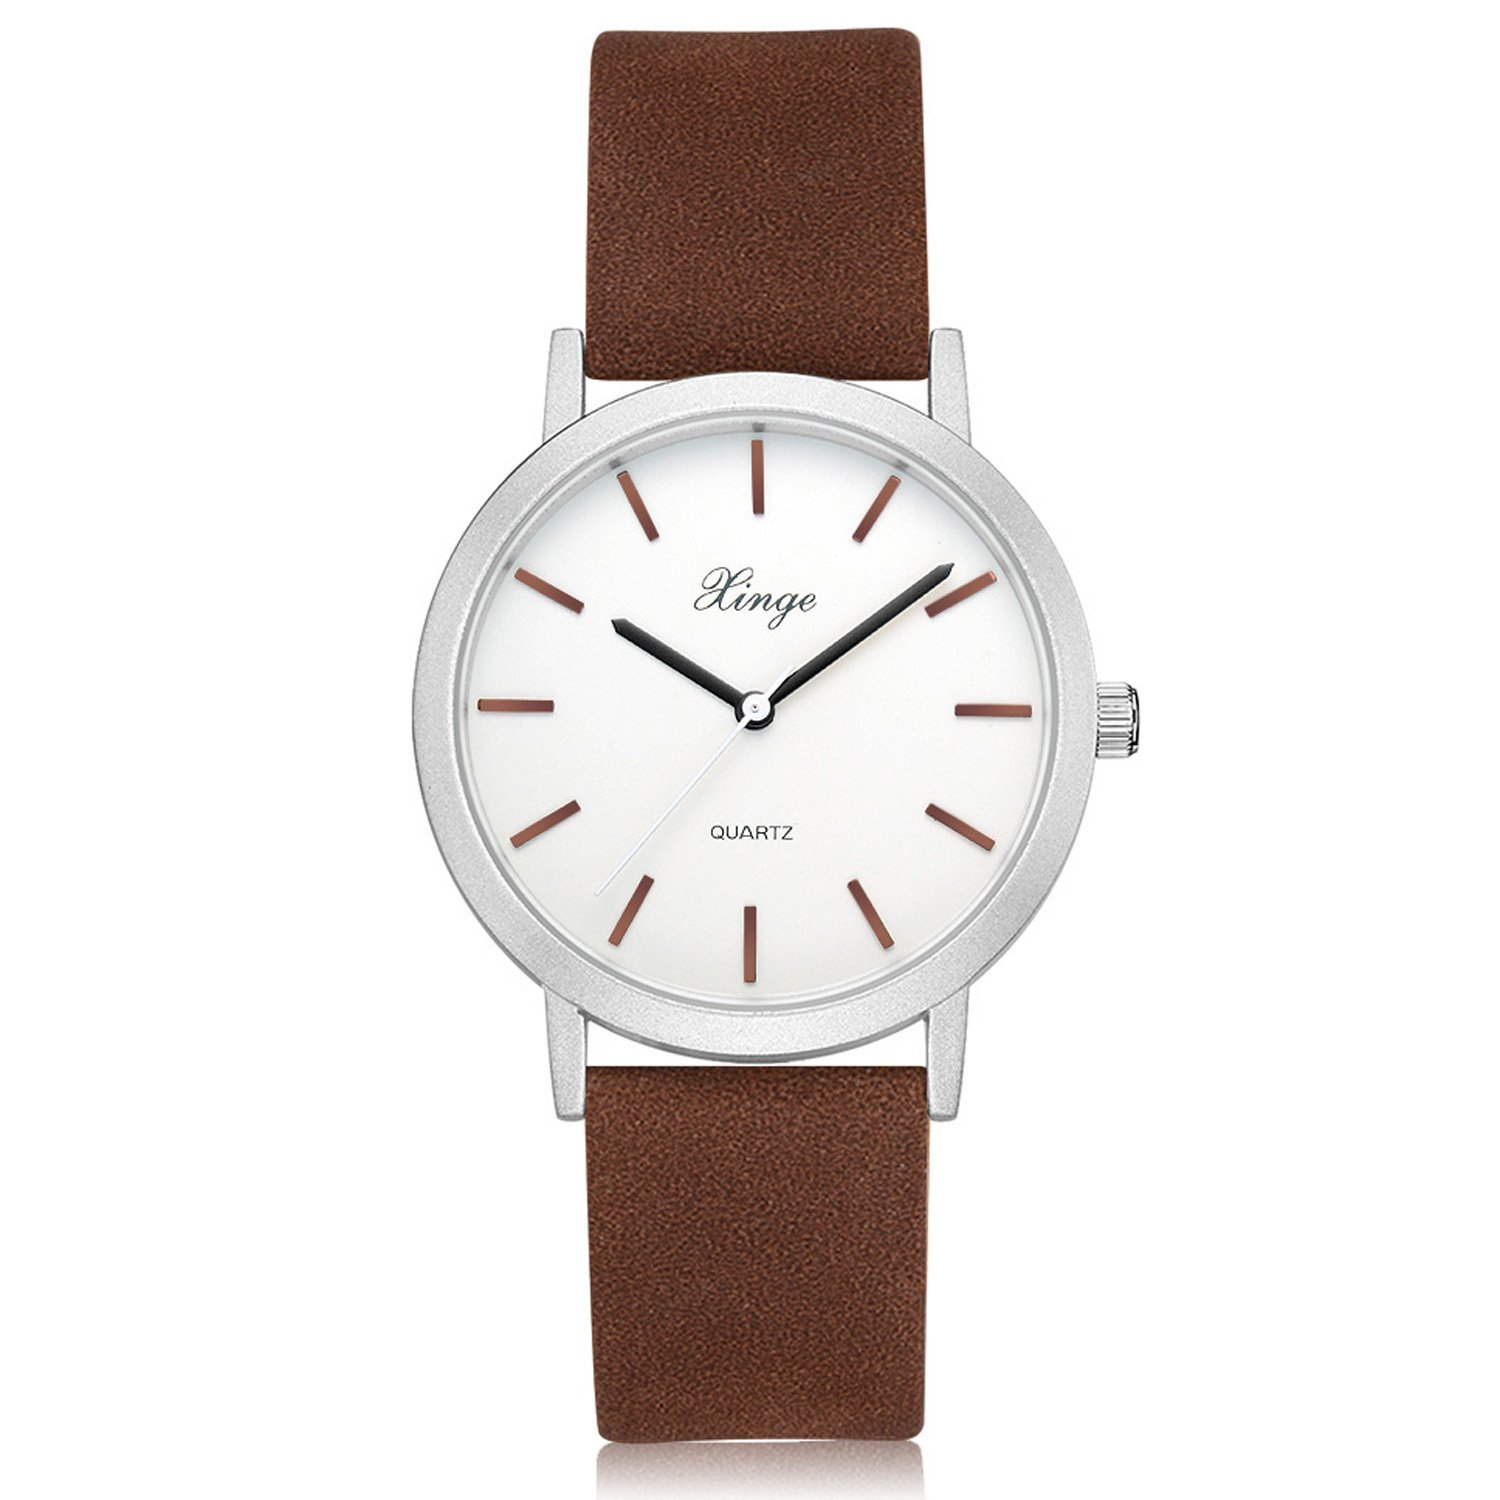 Womens Classic Casual Wrist Watch Simple Design Analog Quartz Leather Band Watches (Brown)